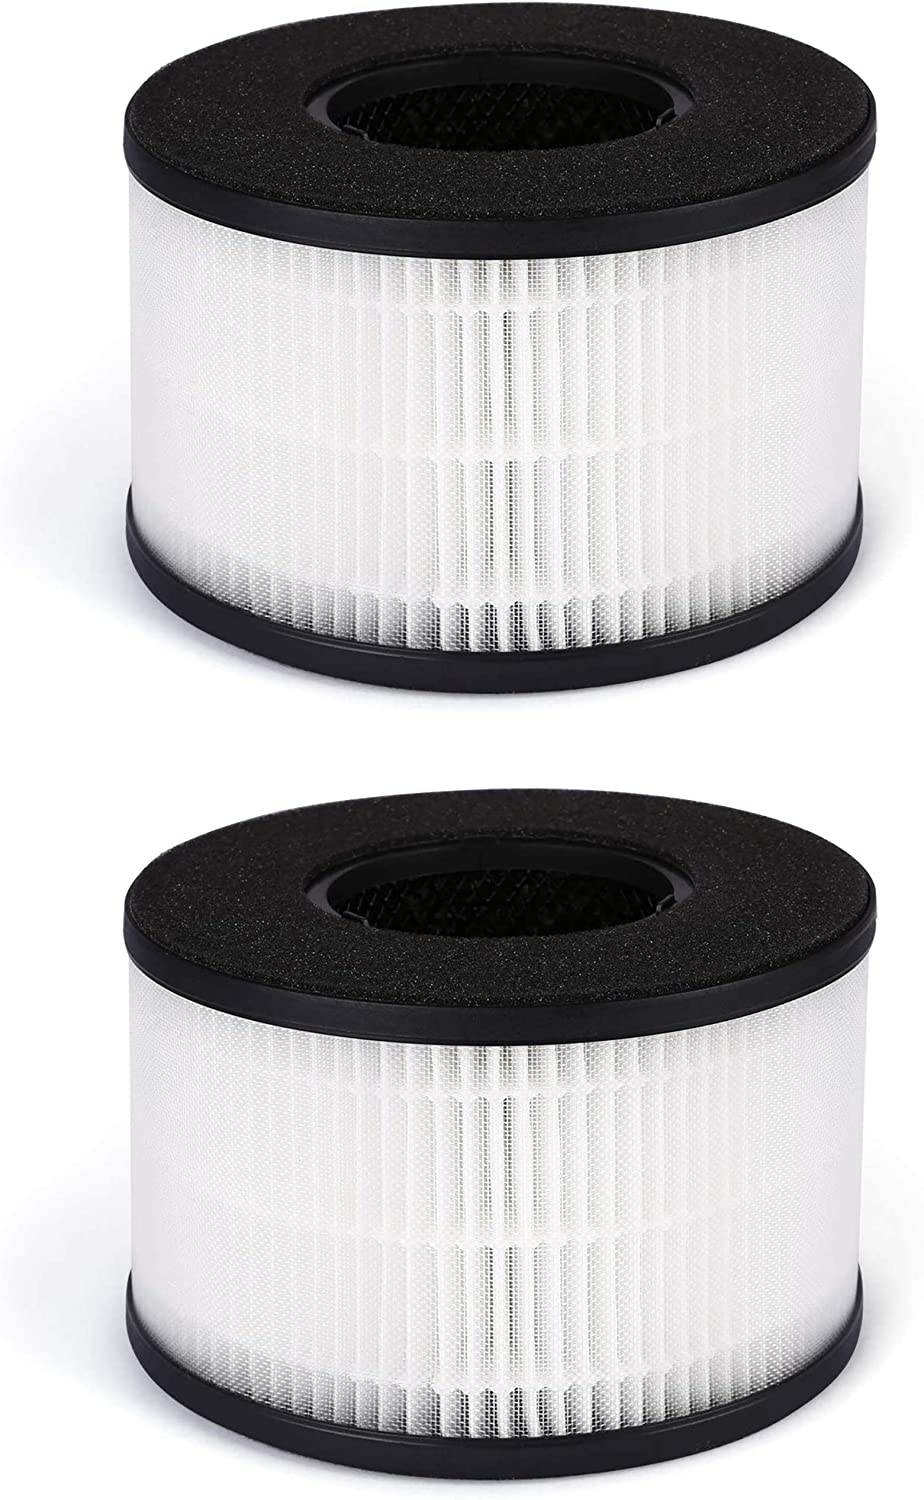 Fette Filter - HEPA Air Replacement Filter, 3-in-1 Filtration System Compatible with PARTU BS-03 Includes Pre-Filter, True HEPA Filter, Activated Carbon Filter - Pack of 2